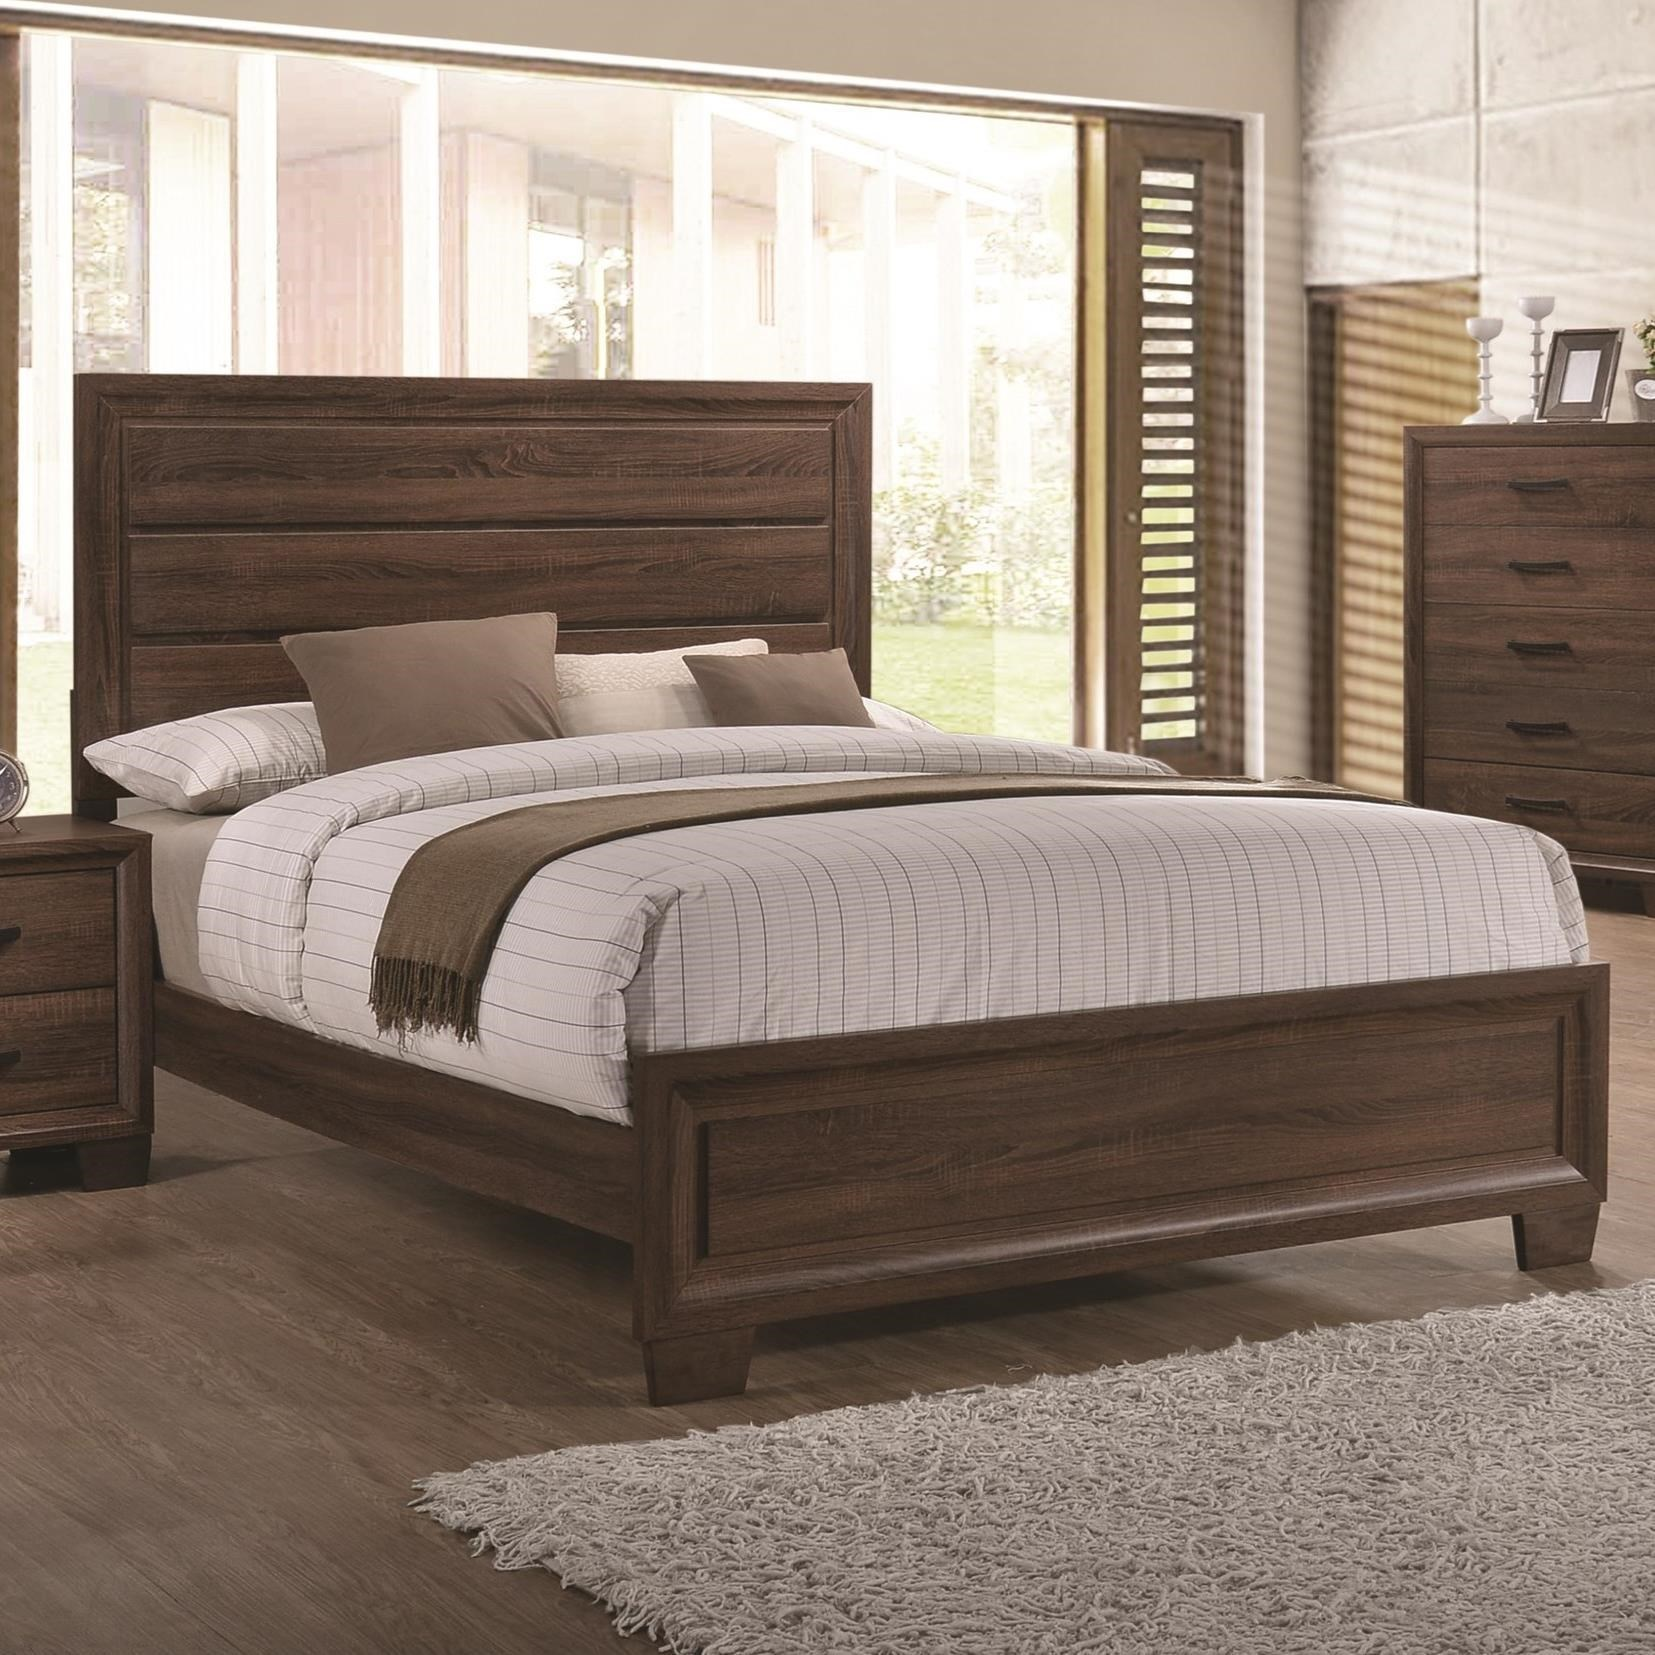 Brandon Queen Bed by Coaster at Northeast Factory Direct